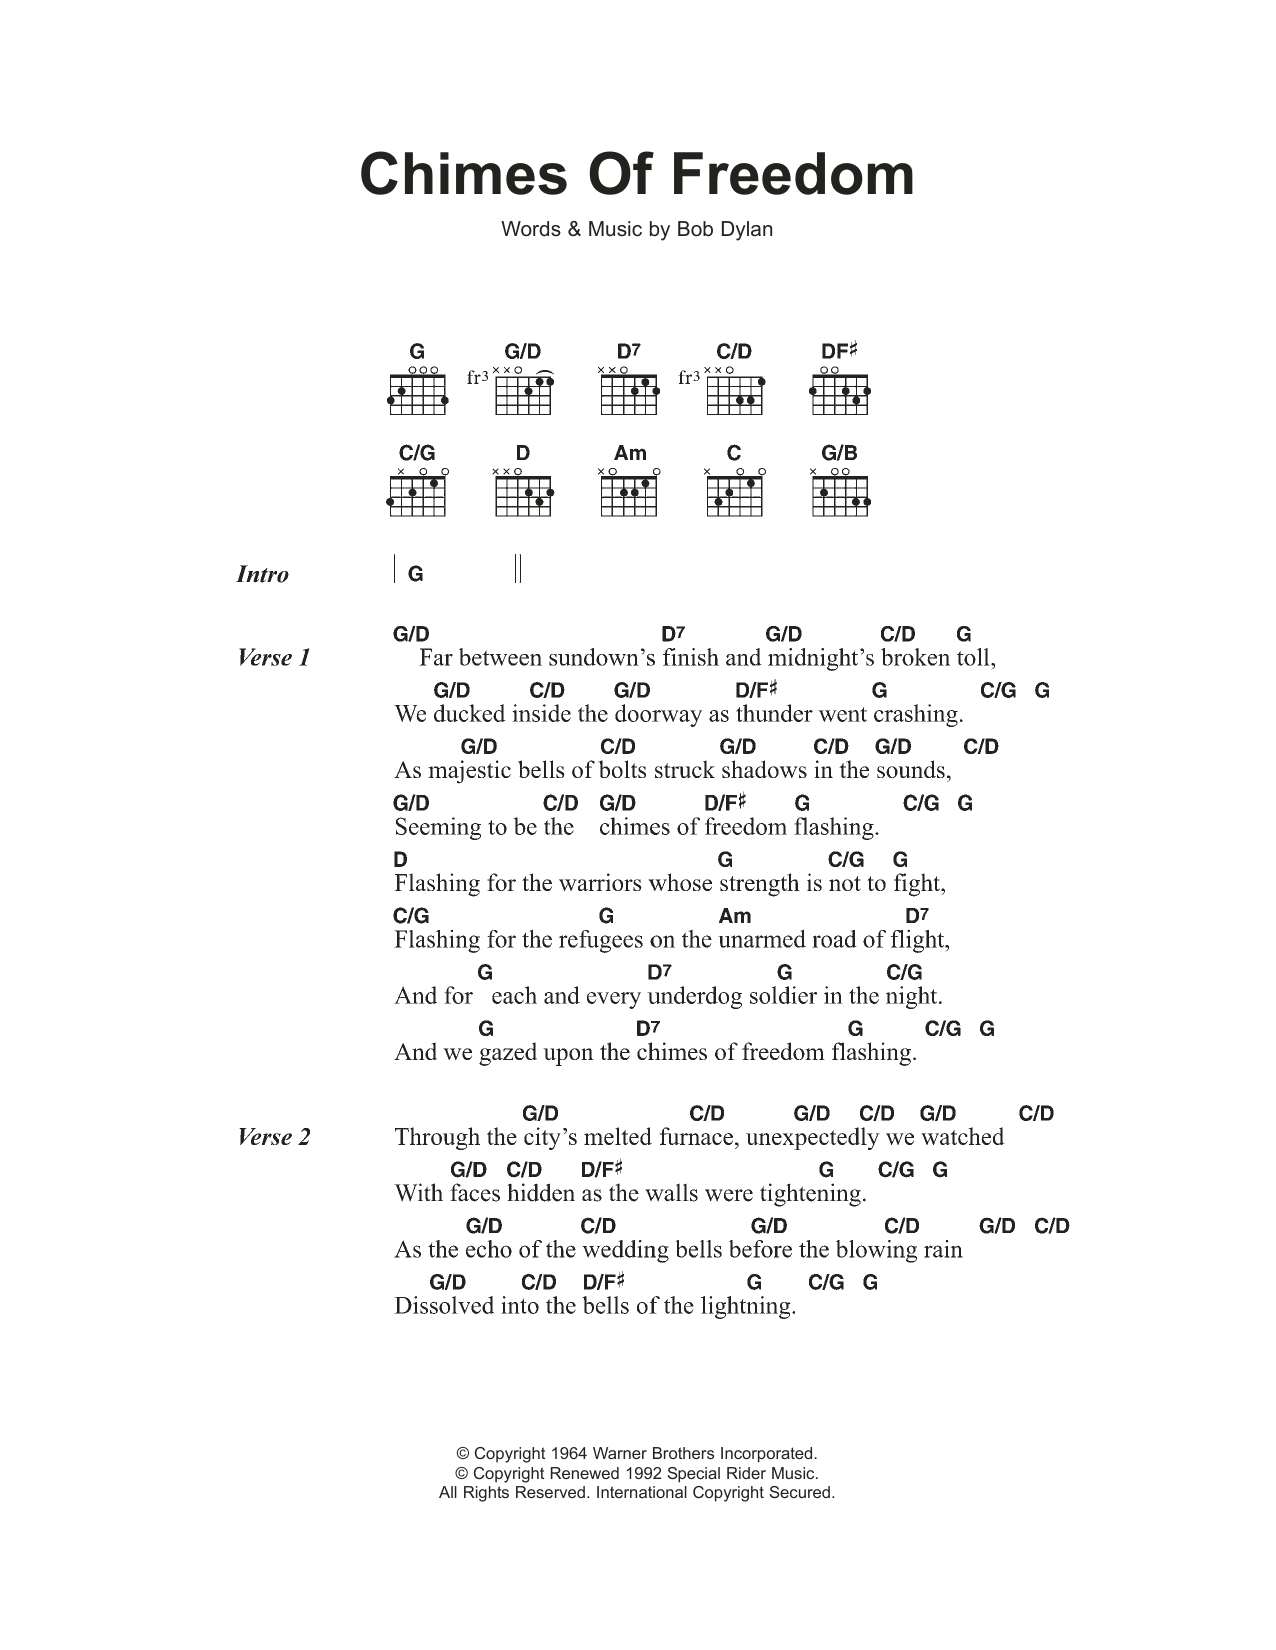 Chimes Of Freedom Sheet Music Bob Dylan Lyrics Chords